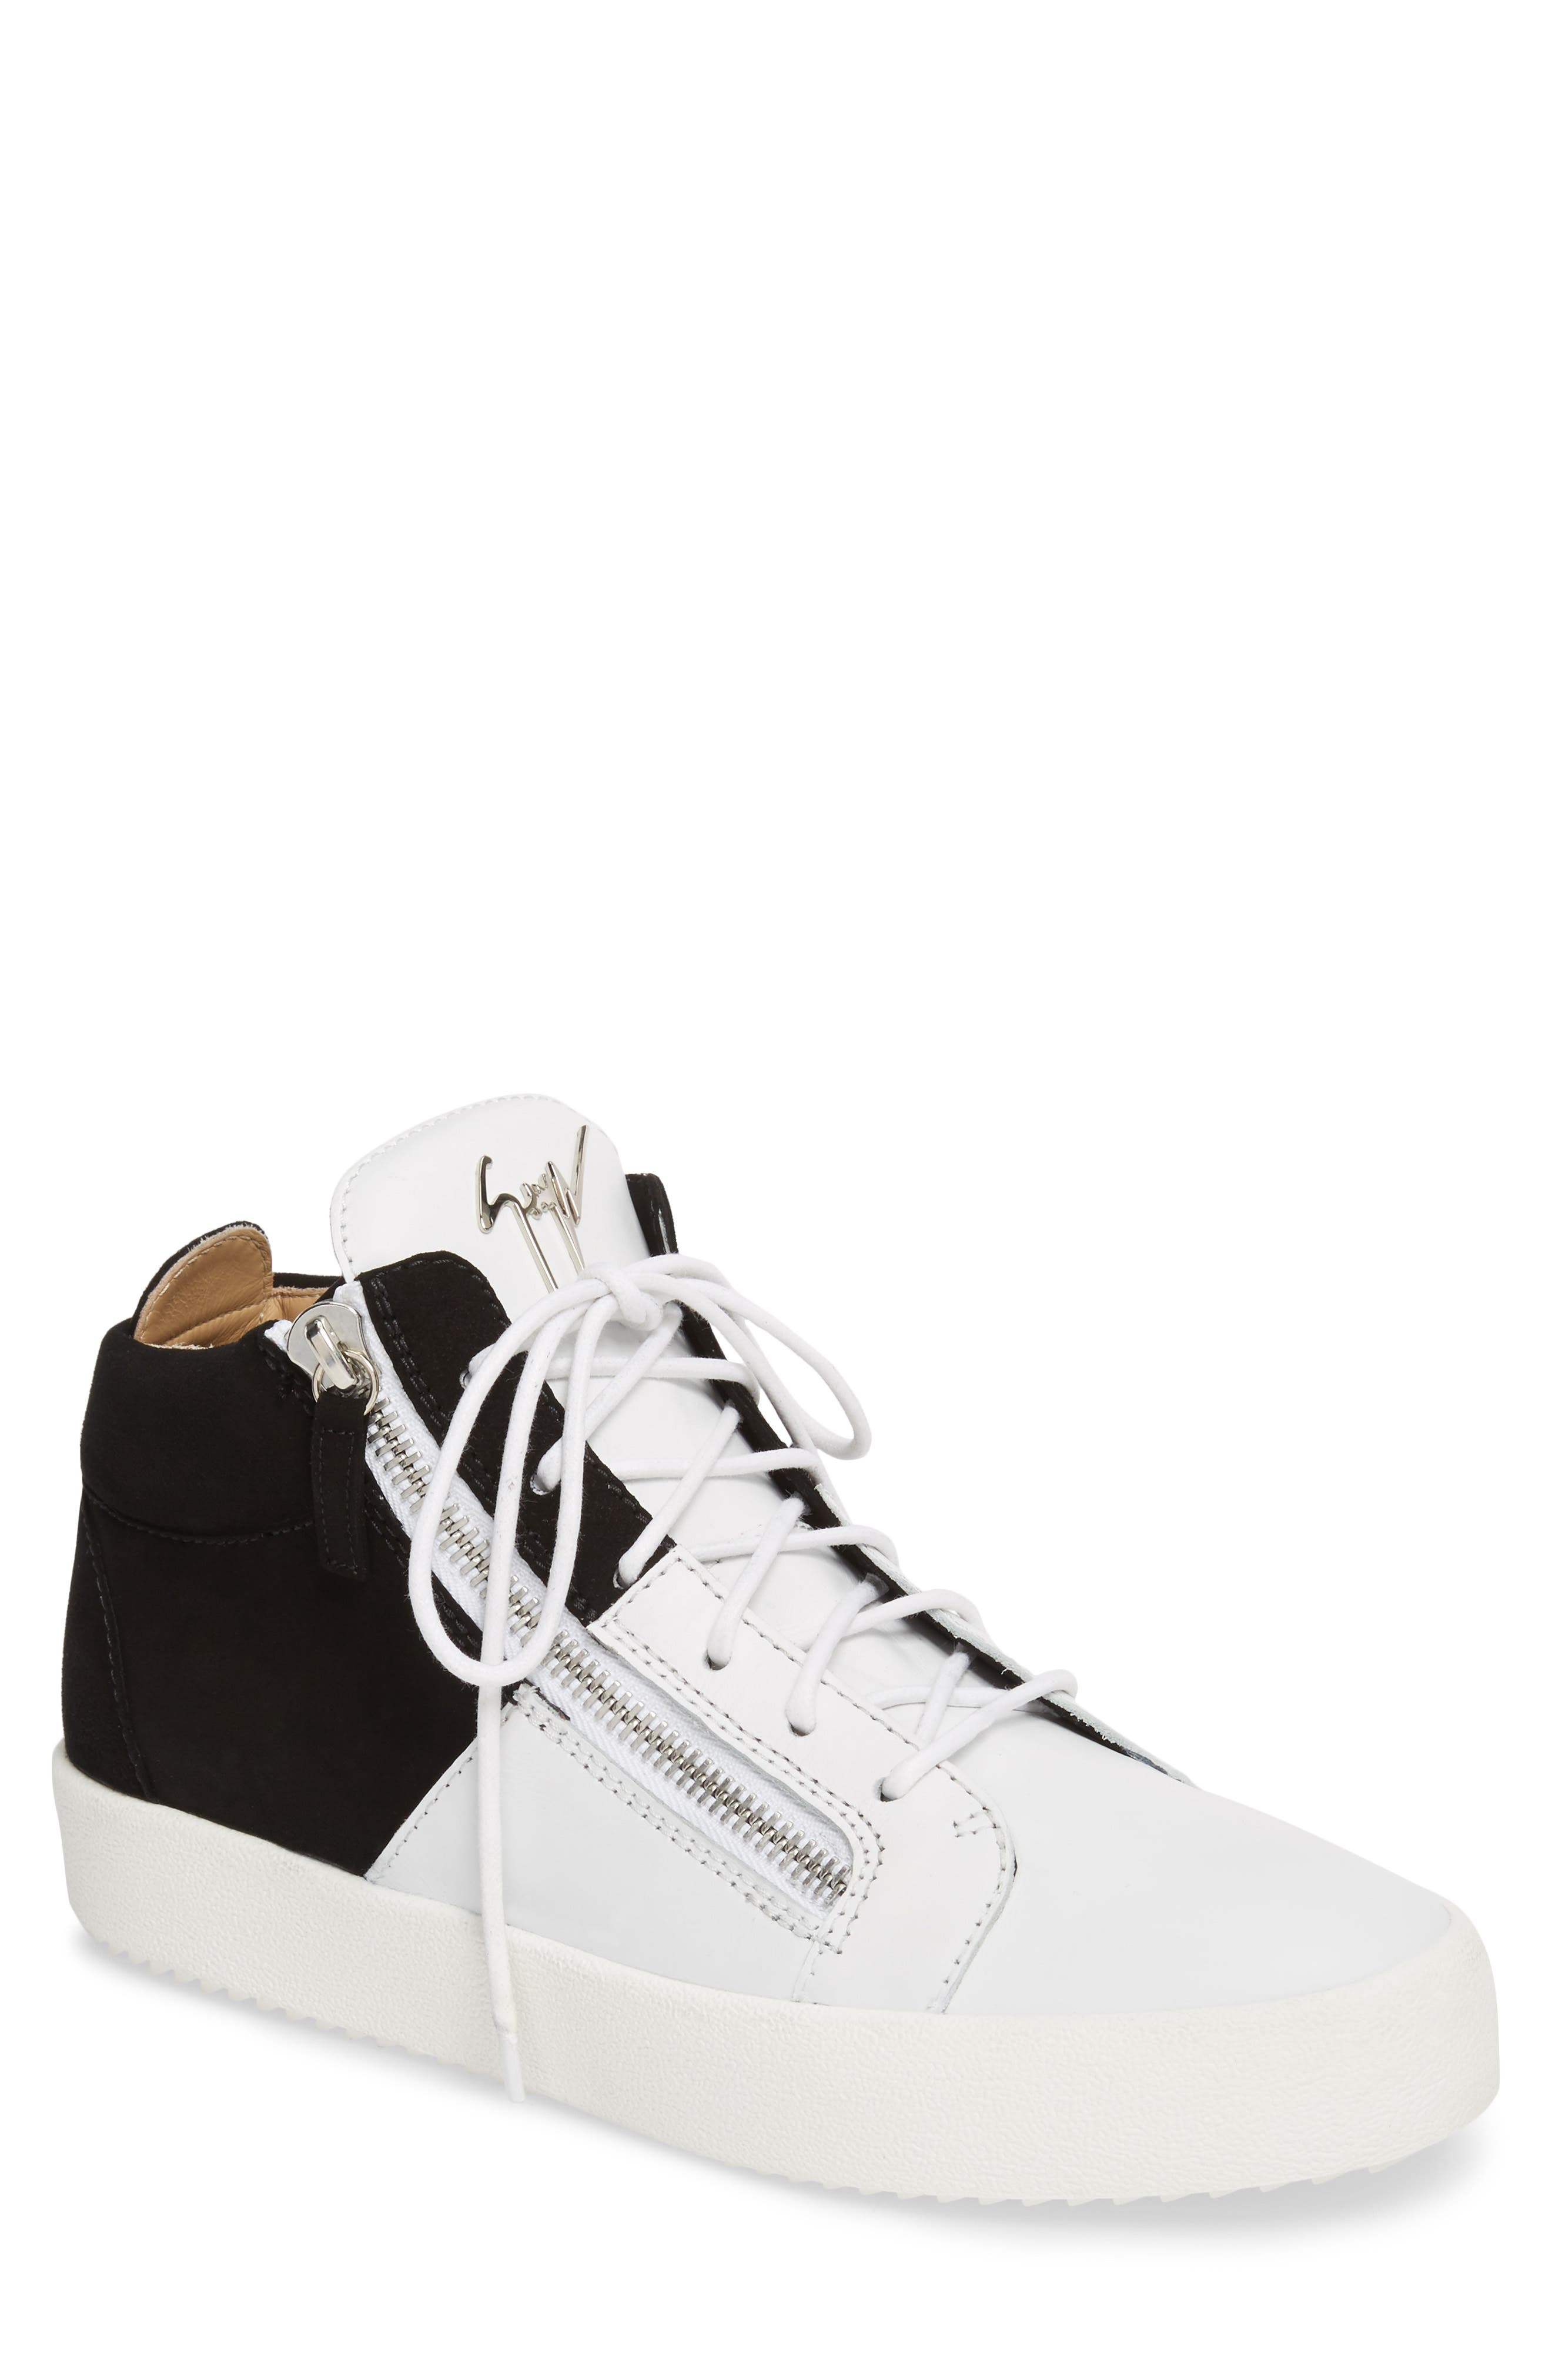 Exposed Sneaker,                             Main thumbnail 1, color,                             Black/White